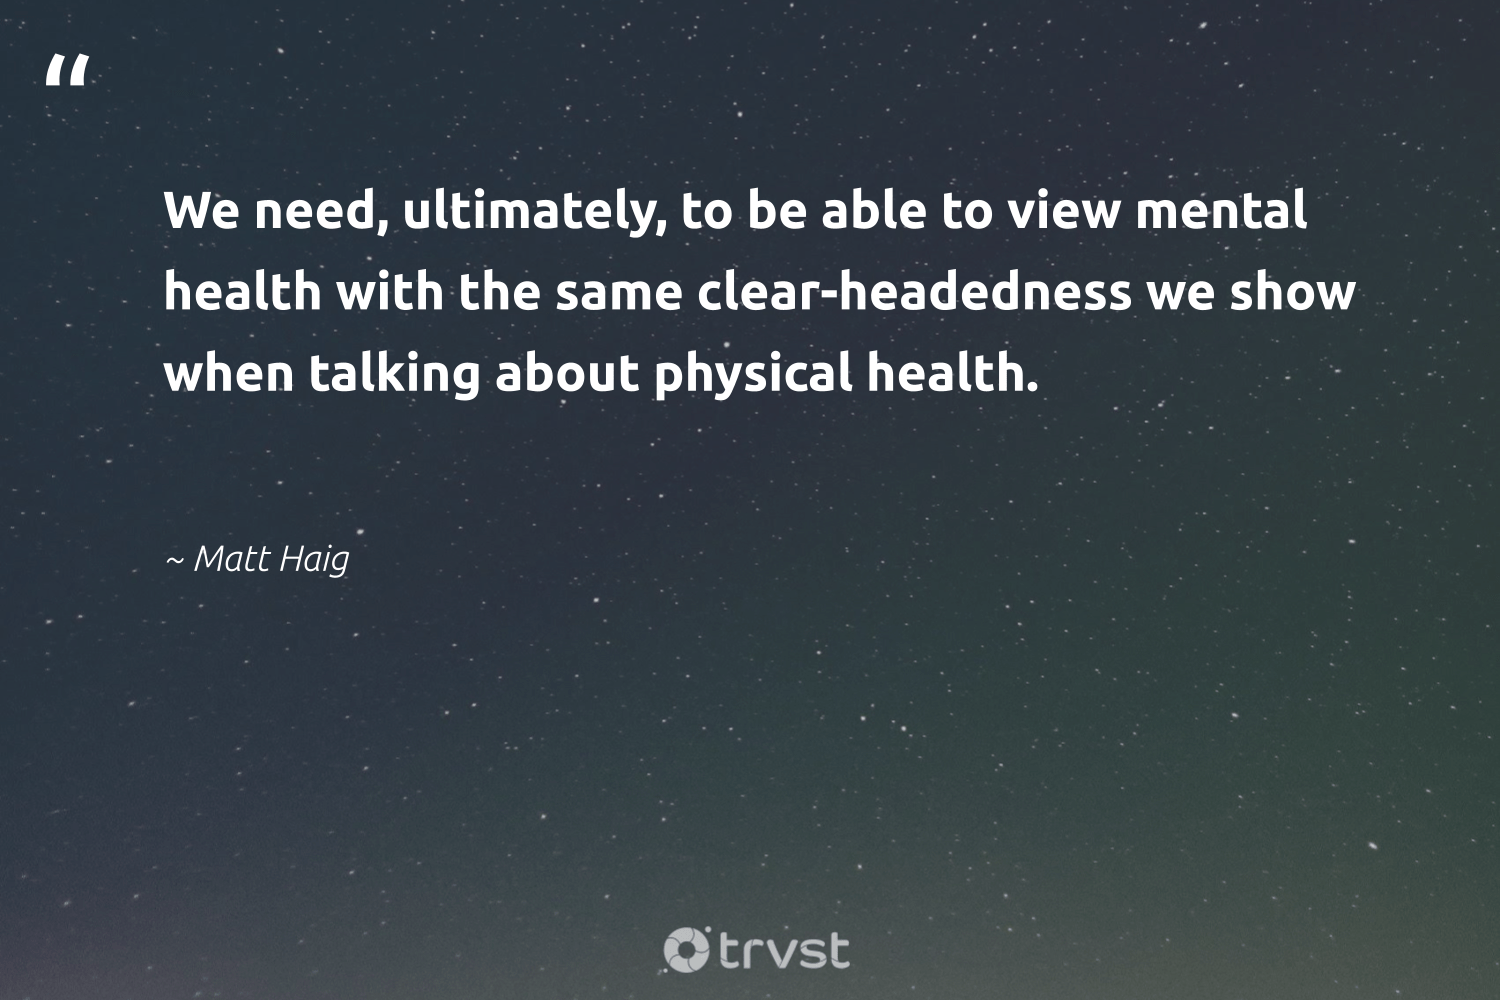 """We need, ultimately, to be able to view mental health with the same clear-headedness we show when talking about physical health.""  - Matt Haig #trvst #quotes #mentalhealth #health #anxiety #mindset #togetherwecan #collectiveaction #mentalhealthawareness #begreat #nevergiveup #dotherightthing"